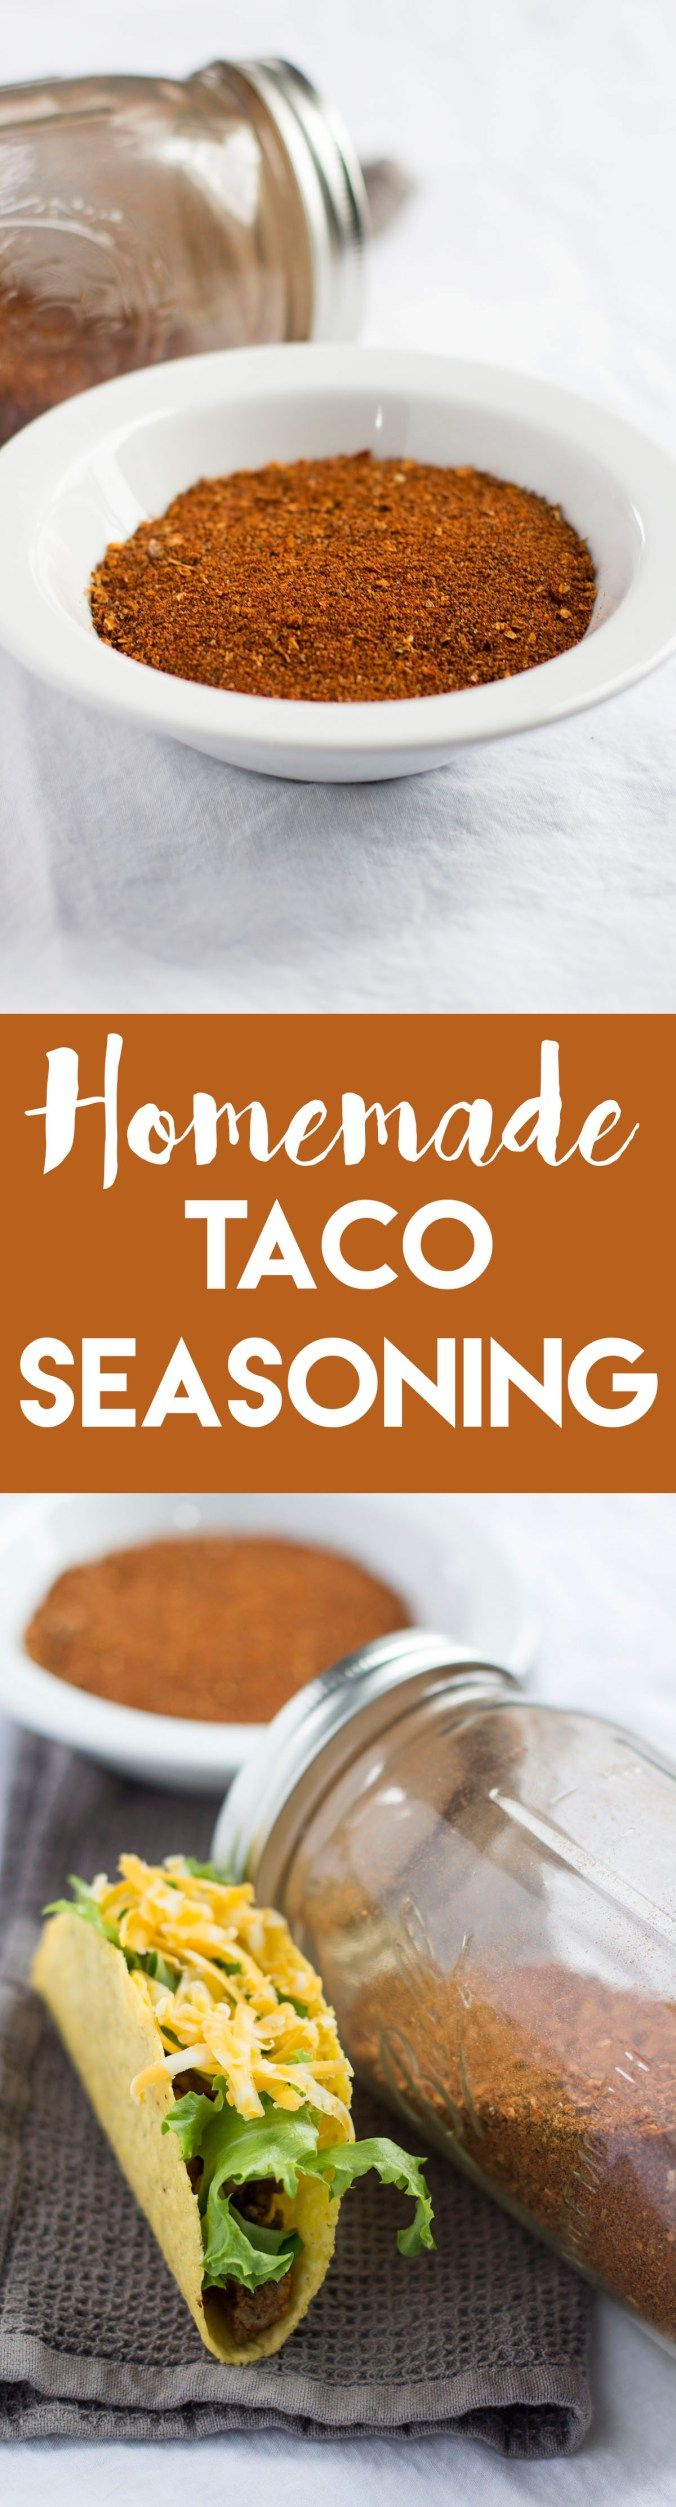 DIY taco seasoning helps you get the most out of your taco nights—it's healthier and way more flavorful than store-bought mixes! | goldenbrownanddelicious.com